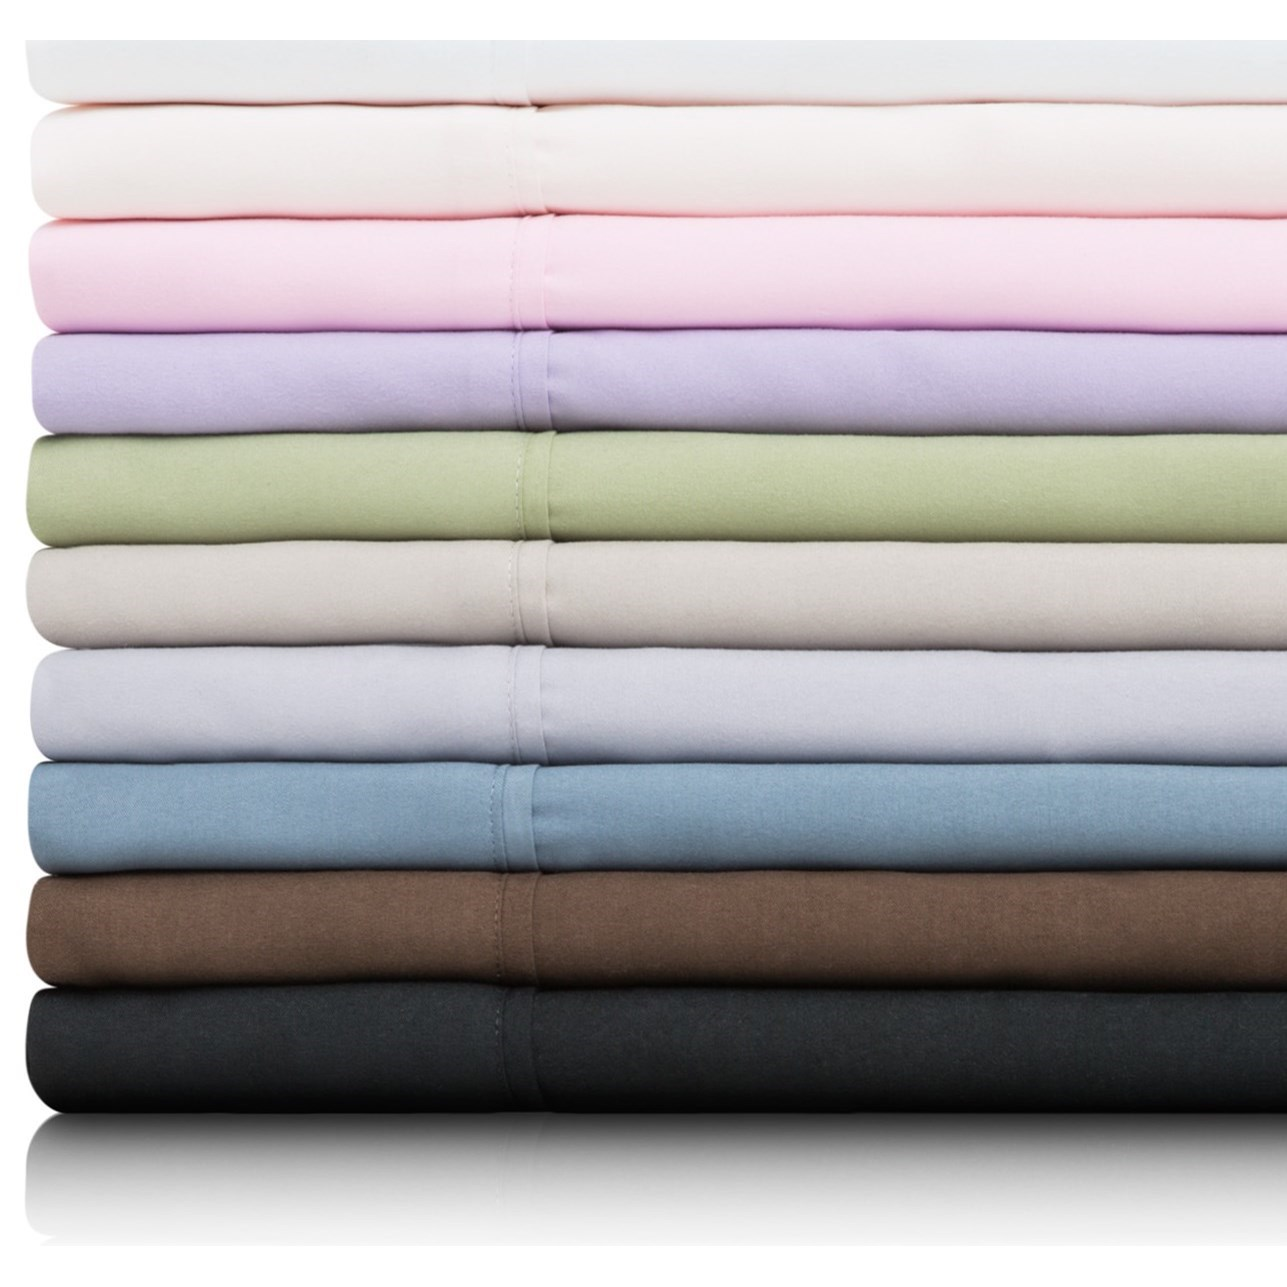 Malouf Brushed Microfiber Queen Woven™ Brushed Microfiber Olympic Shee - Item Number: MA90OQPAMS